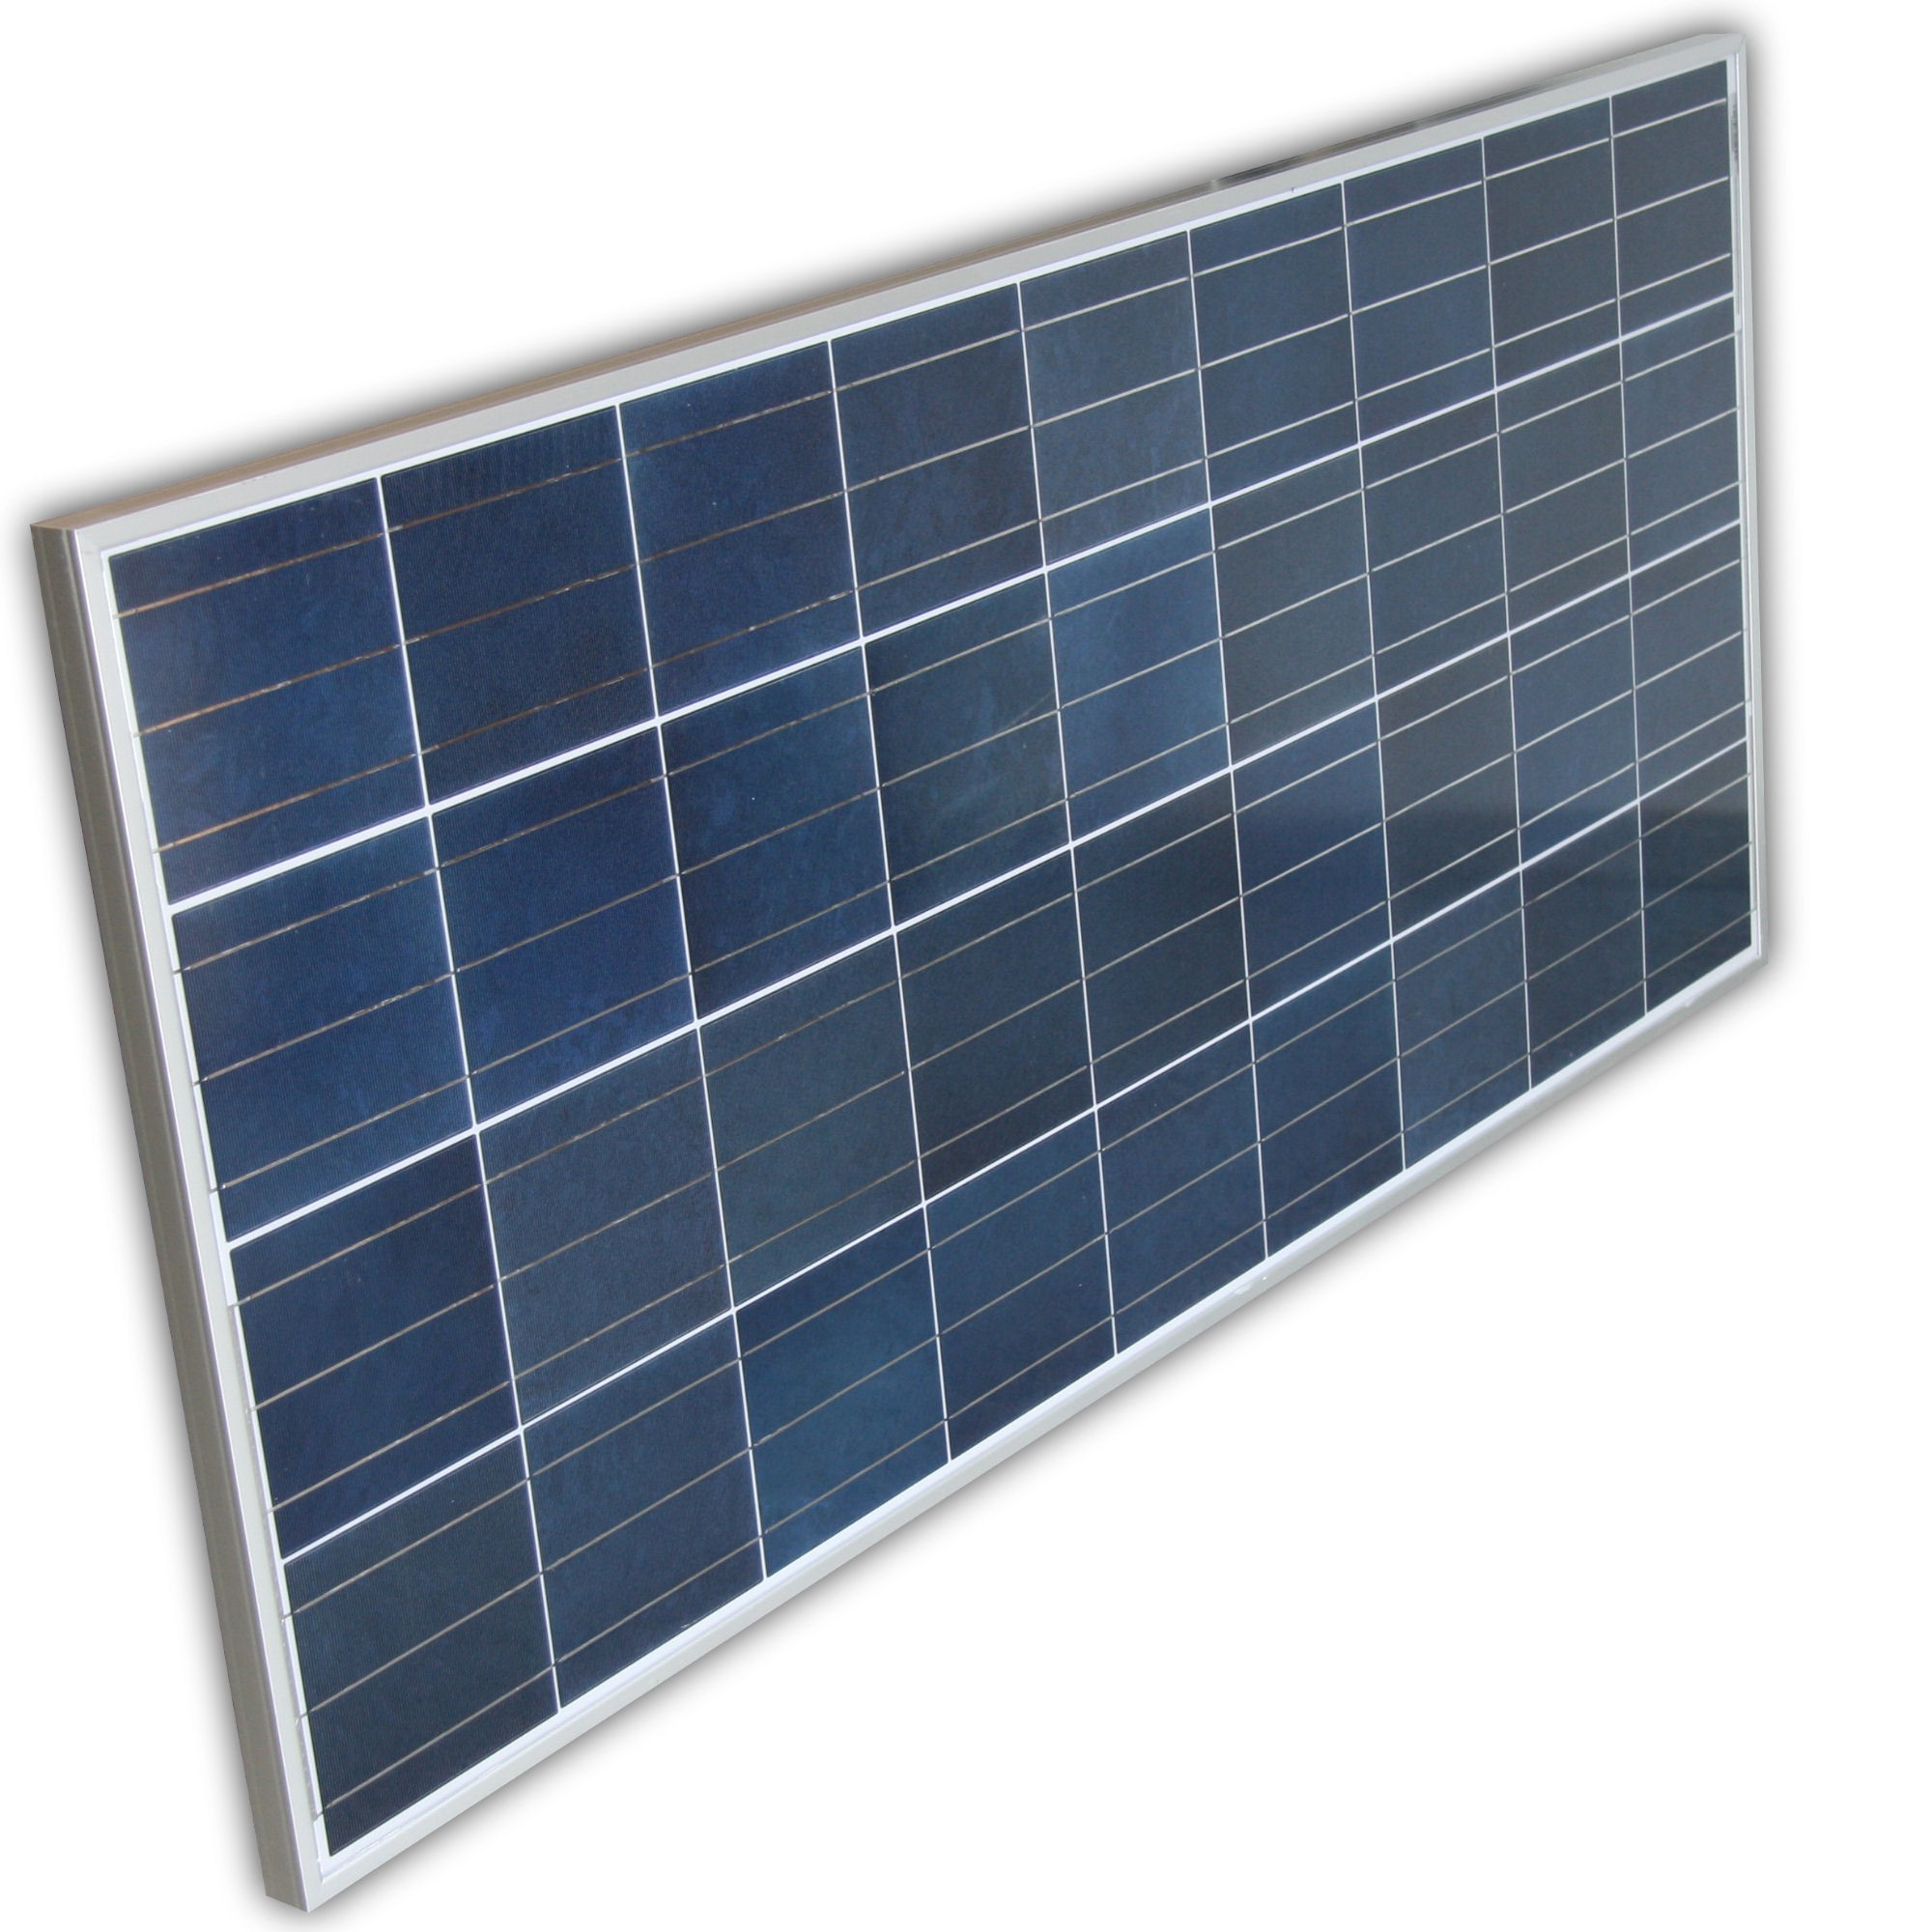 solarpanel 12v solarmodul solarzelle polykristallin 12volt. Black Bedroom Furniture Sets. Home Design Ideas